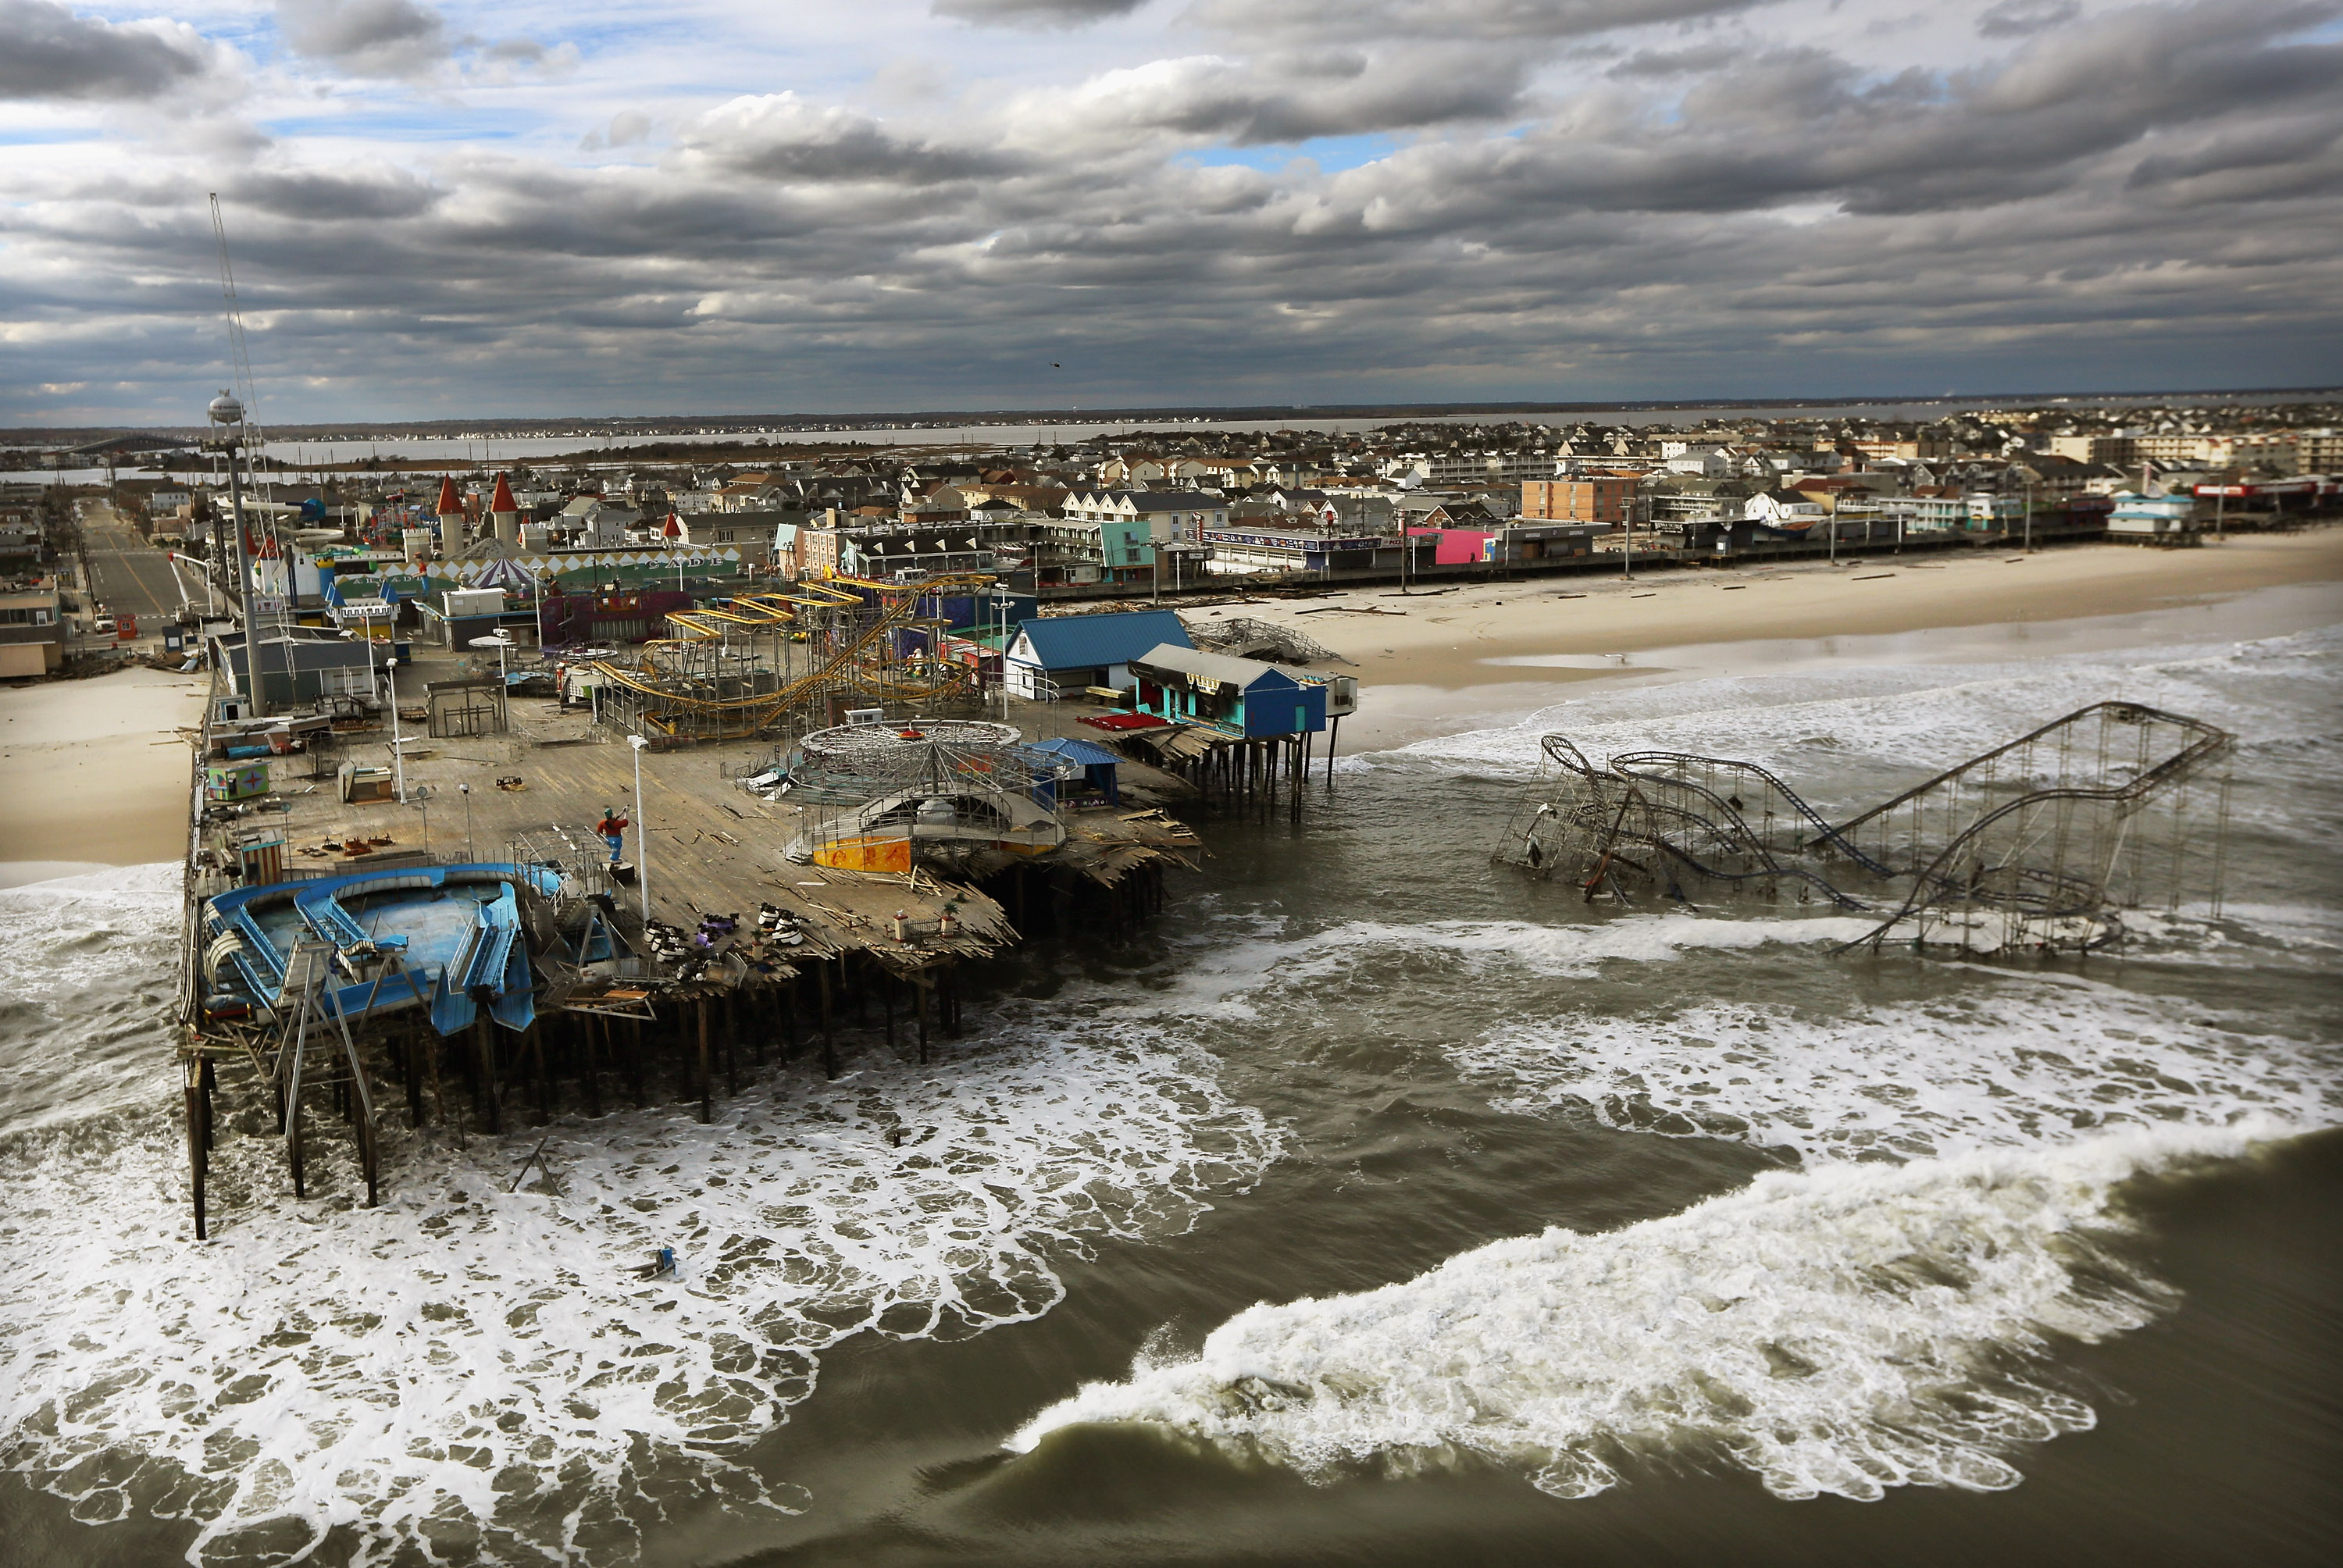 Superstorm Sandy destroyed some attractions and part of the city's famed boardwalk in October 2012.